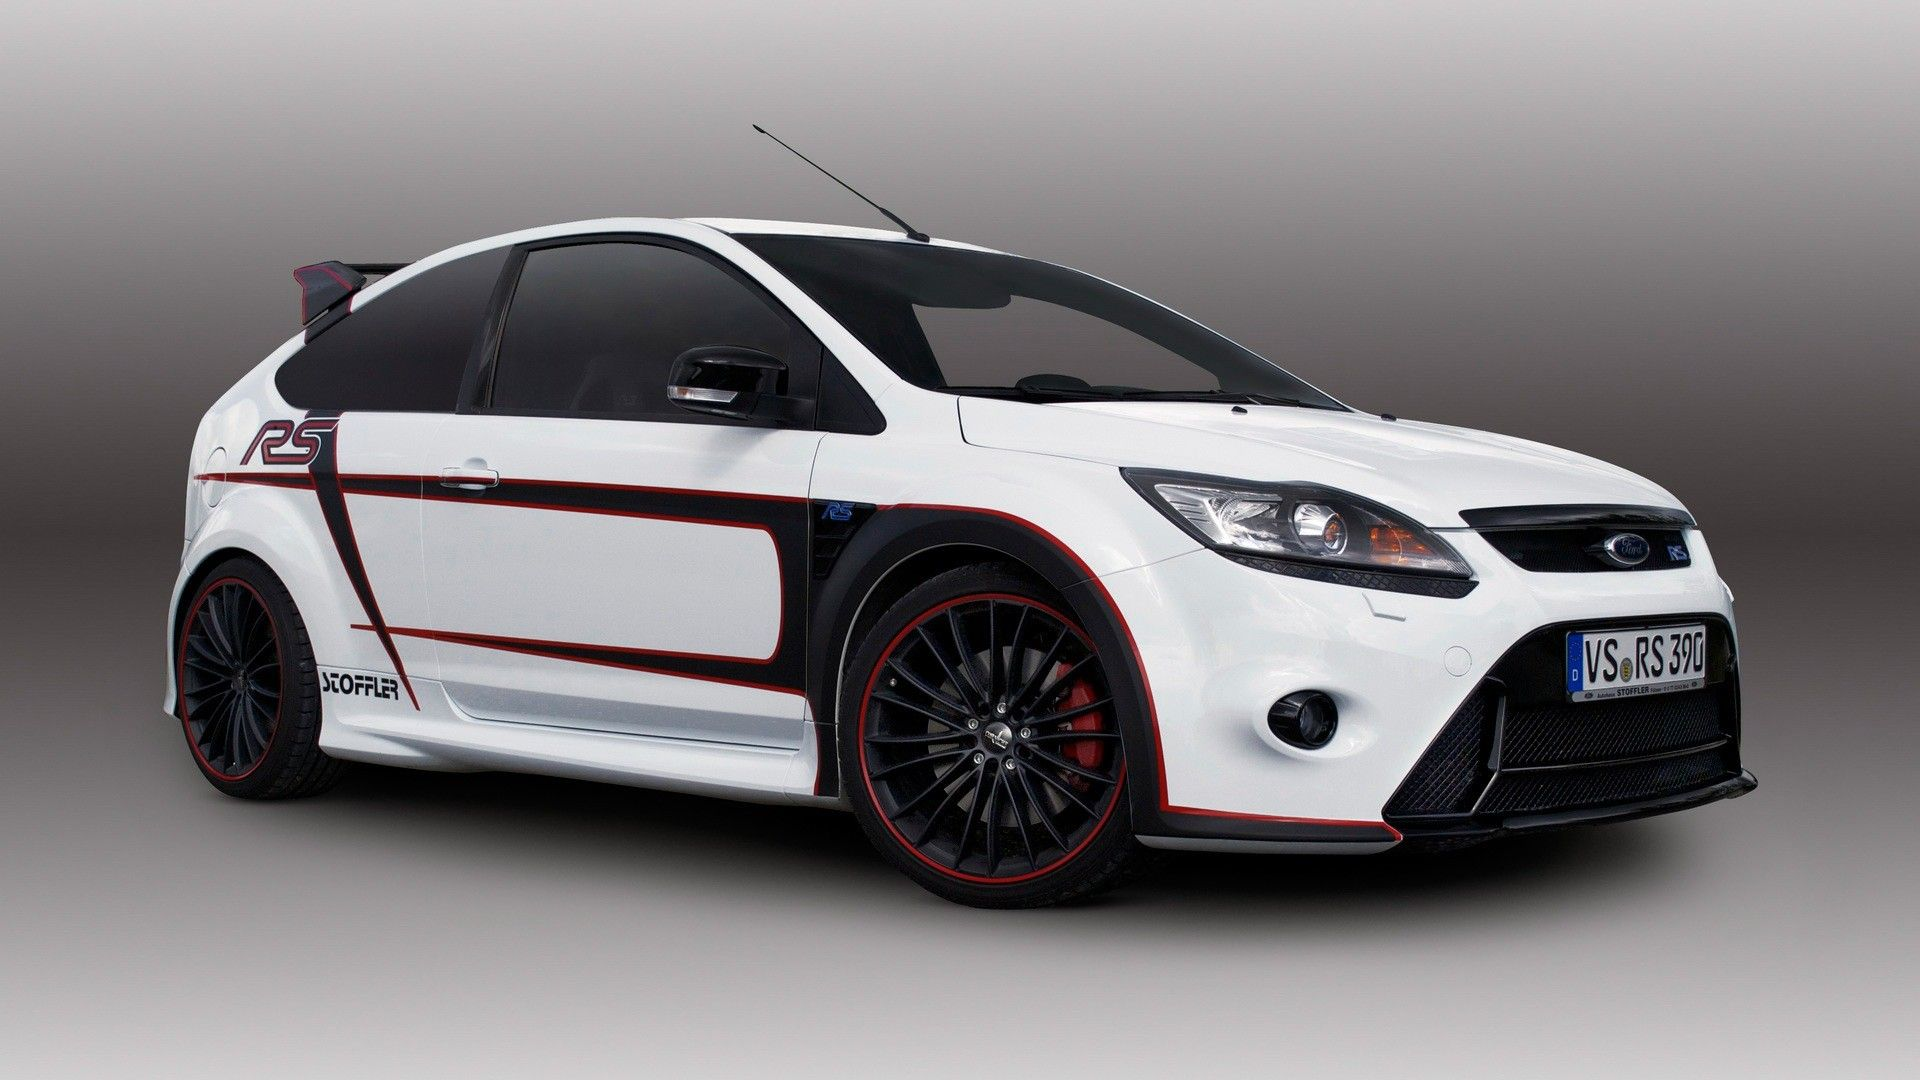 Ford Focus Rs Hd Wallpaper Http 1sthdwallpapers Com Ford Focus Rs Hd Wallpapers Pintura De Autos Autos Camionetas